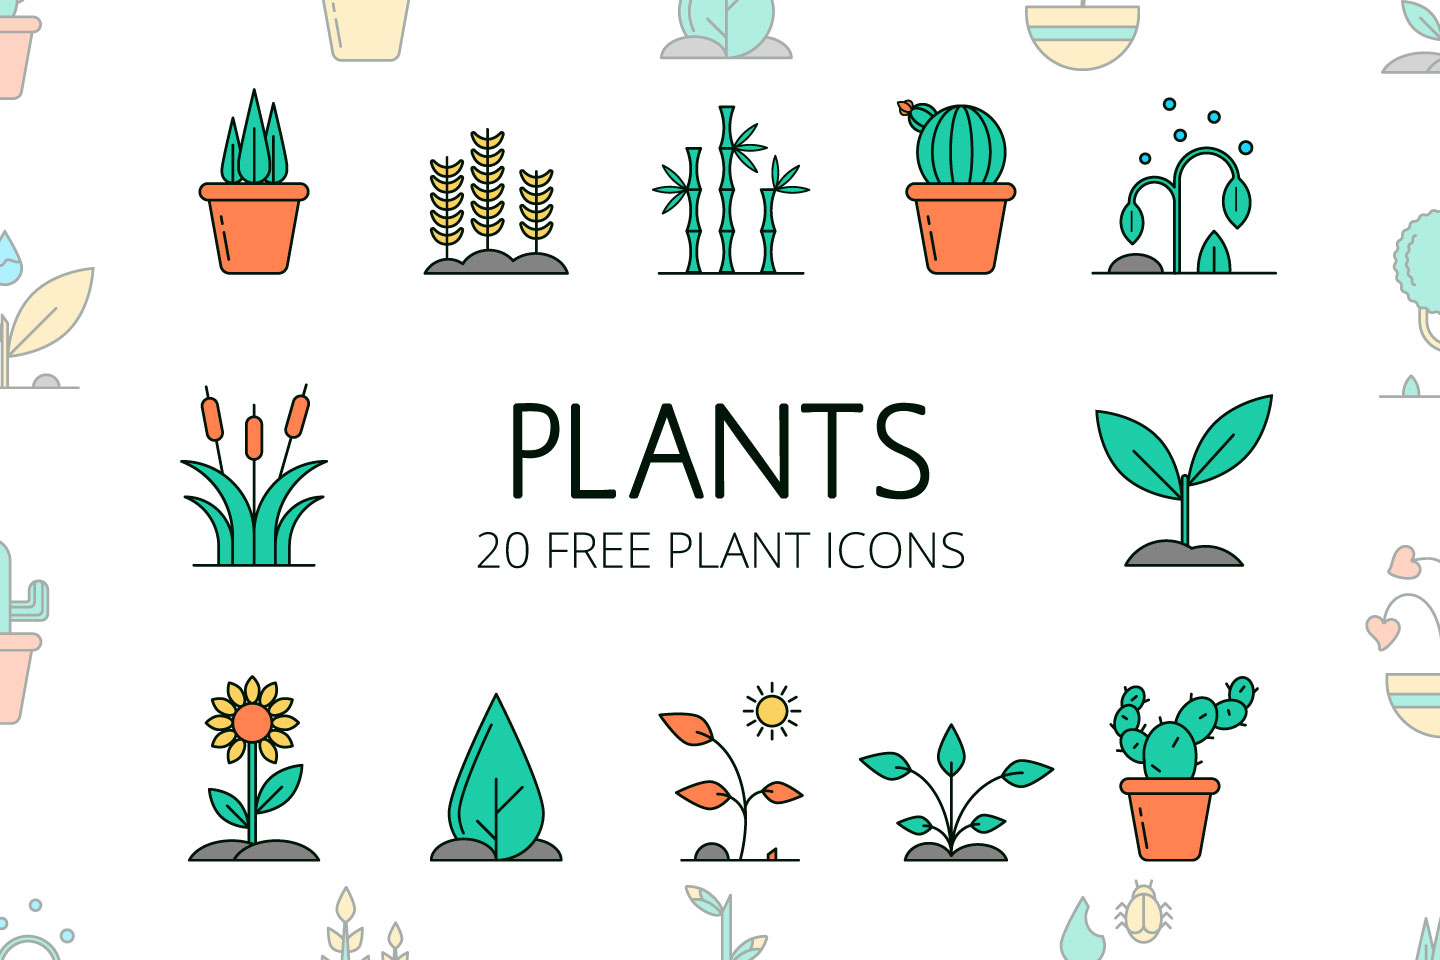 Plant Icon : Free plant icons in wide variety of styles like line, solid, flat, colored outline, hand drawn and many more such styles.